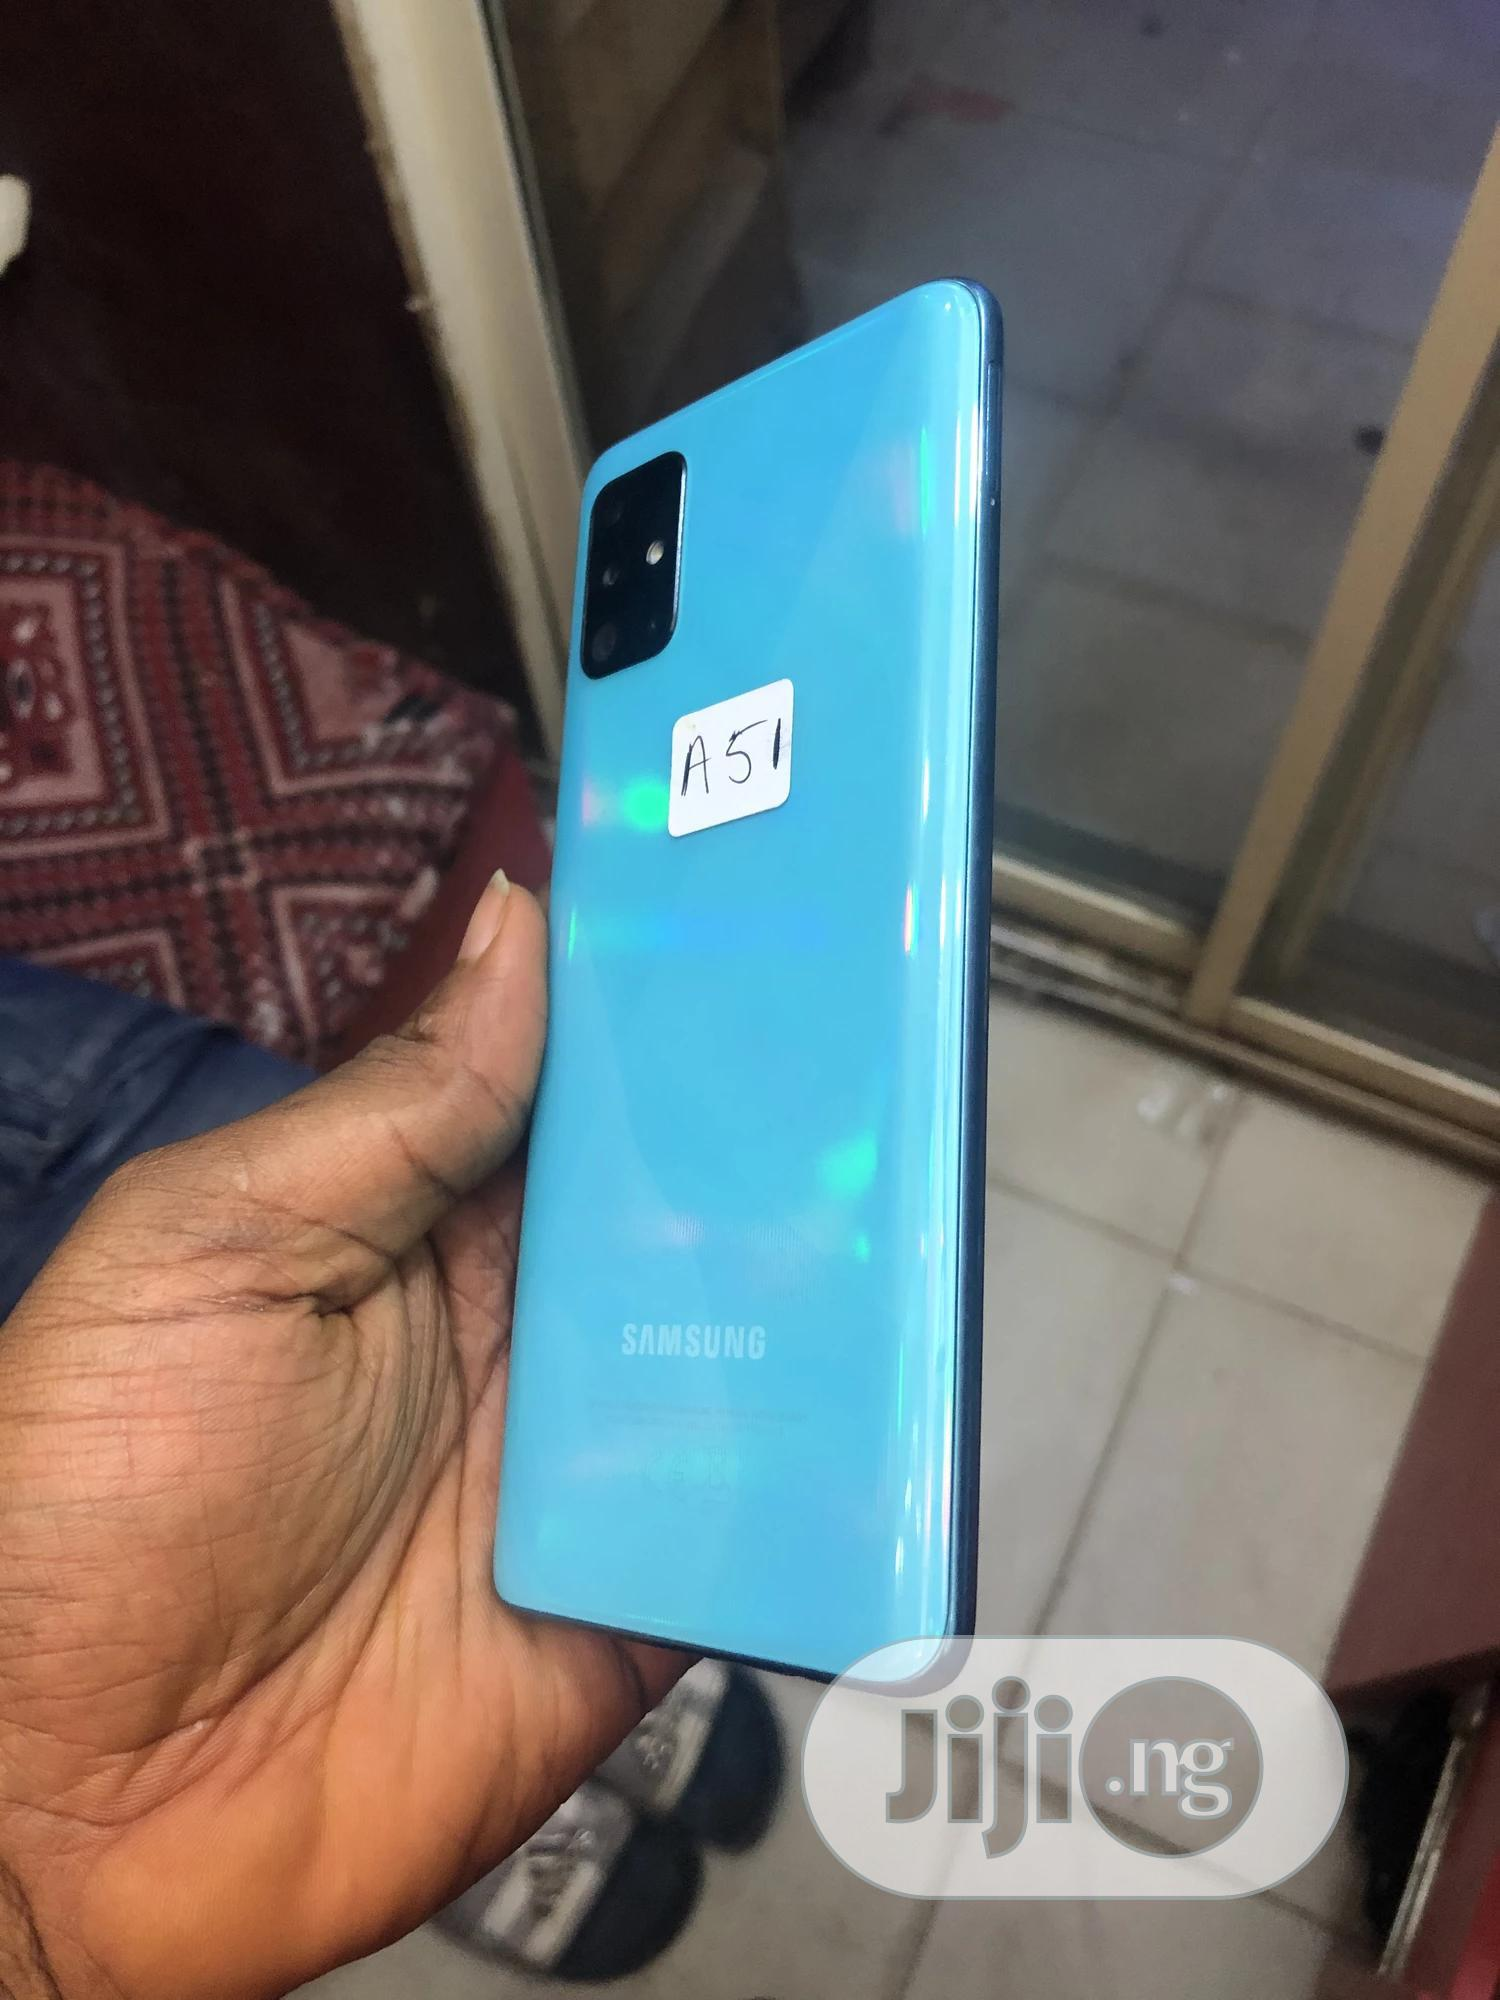 Samsung Galaxy A51 128 GB | Mobile Phones for sale in Onitsha, Anambra State, Nigeria